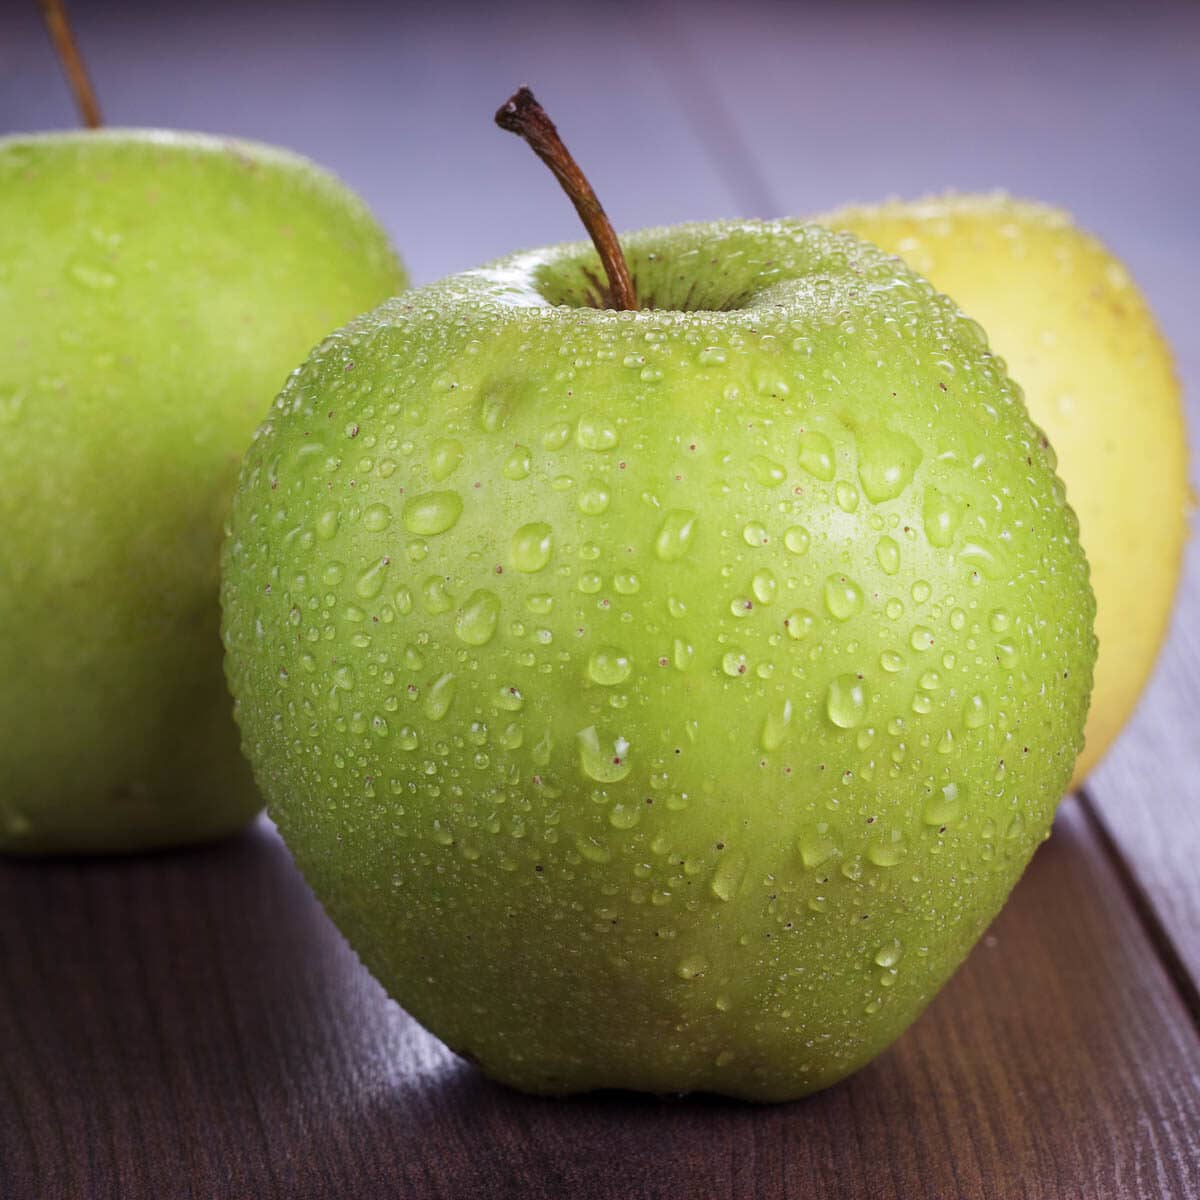 3 green apples with water beads all over them.